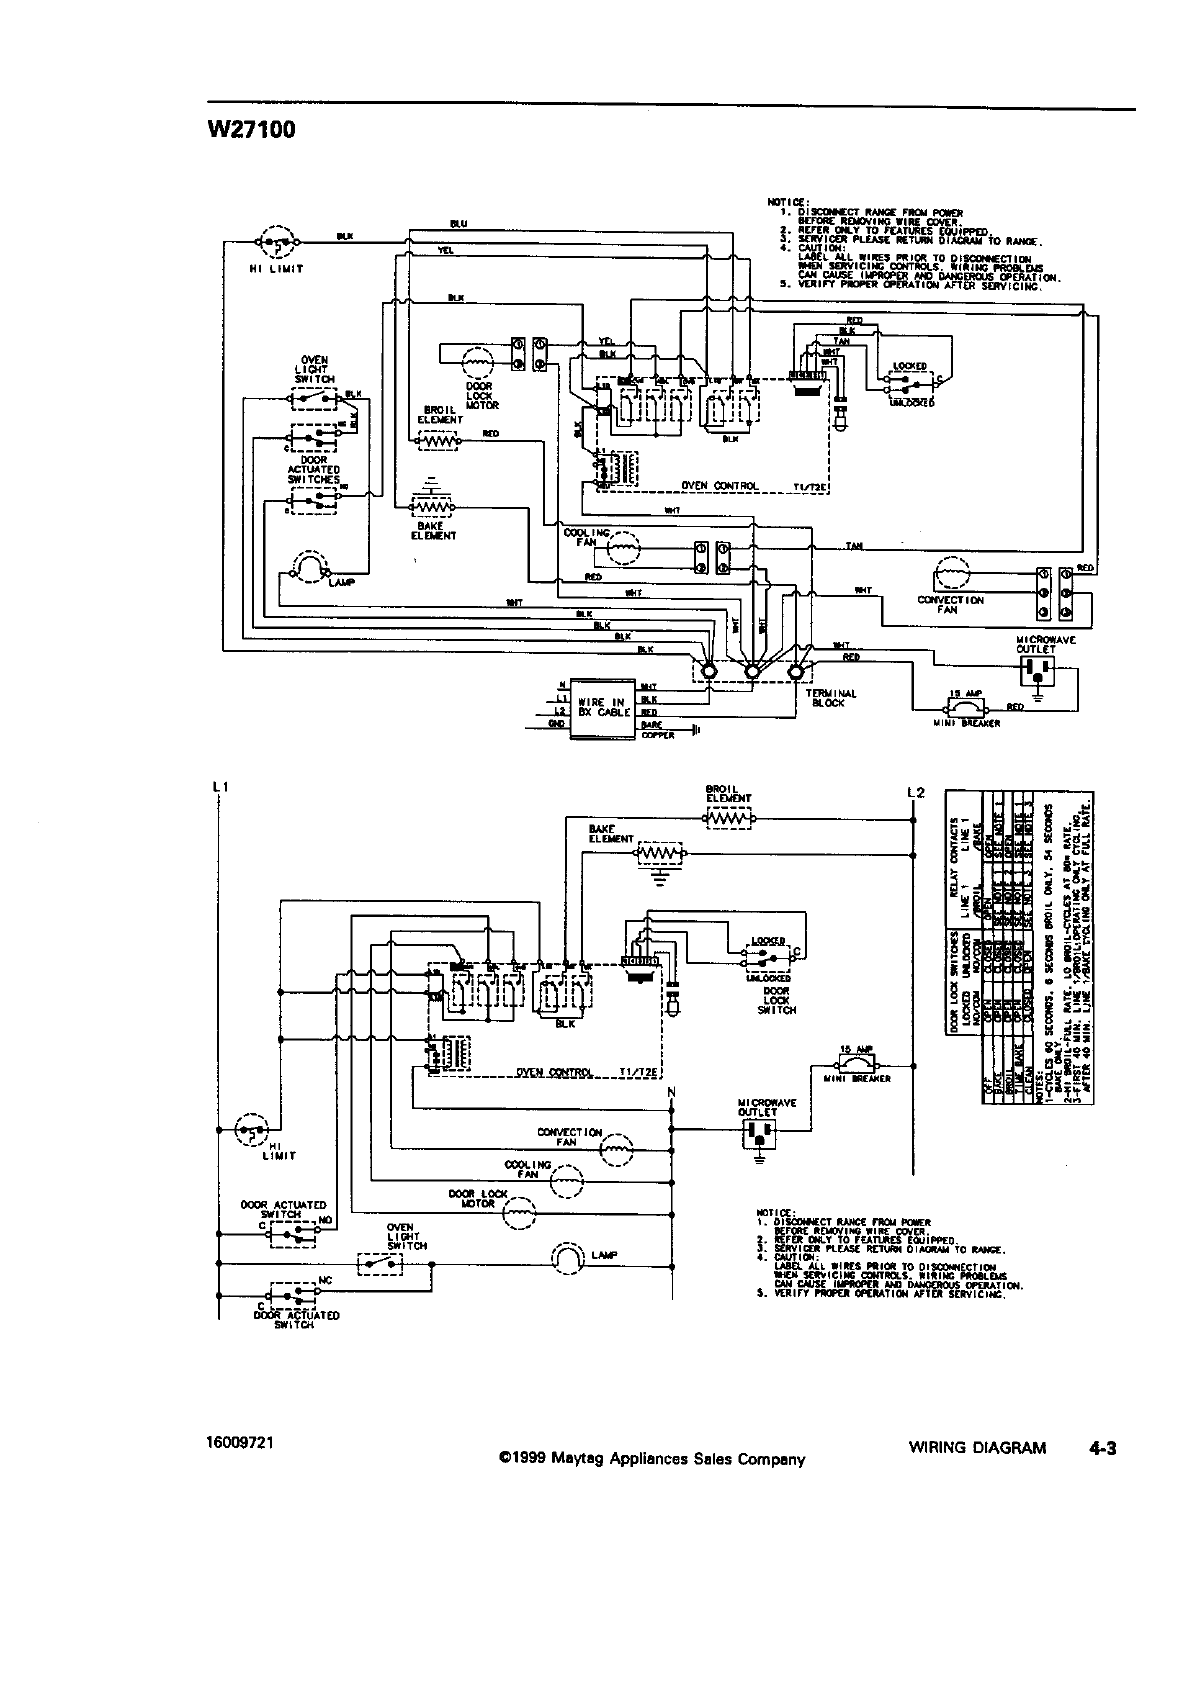 52b2f415 78fa 4259 88c0 be210120d02a bg23 page 35 of jenn air oven w27100 user guide manualsonline com Basic Electrical Wiring Diagrams at virtualis.co